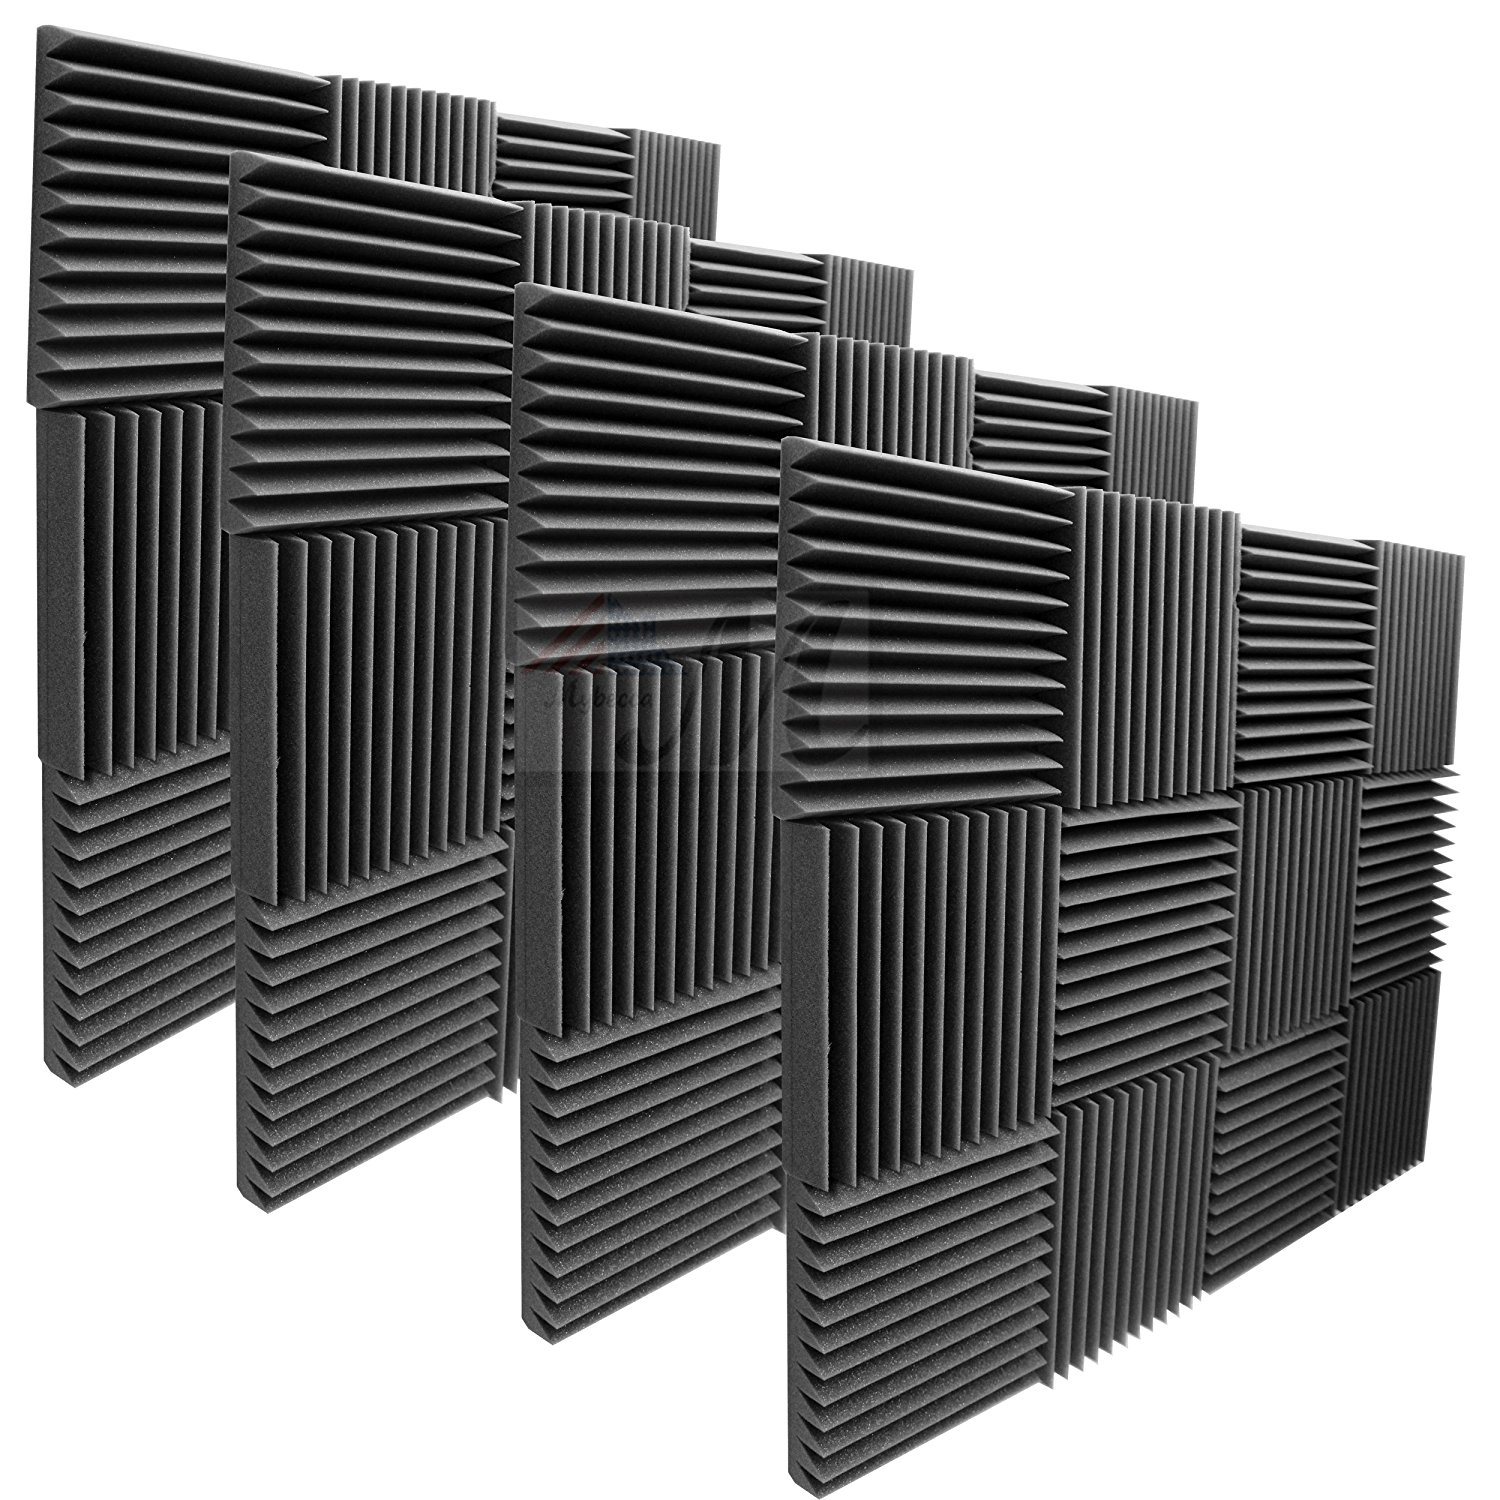 "48 Pack Acoustic Panels Studio Soundproofing Foam Wedges 2"" X 12"" X 12"""